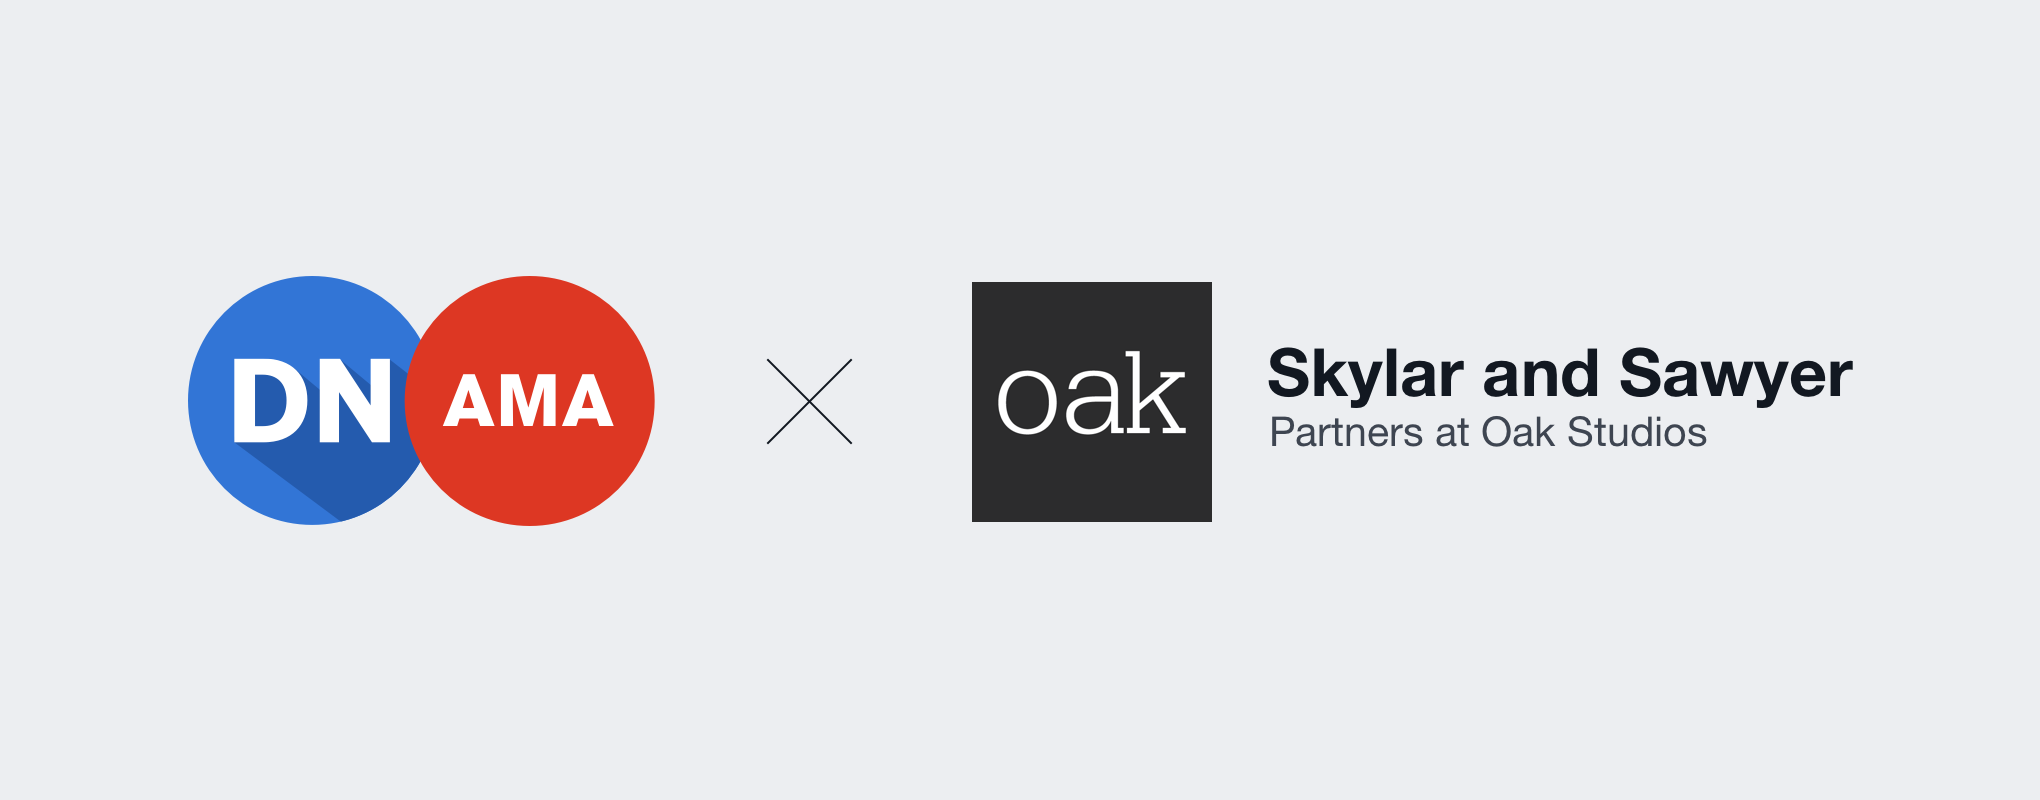 Dropmark Extension ama: sawyer and skylar from oak / makers of dropmark